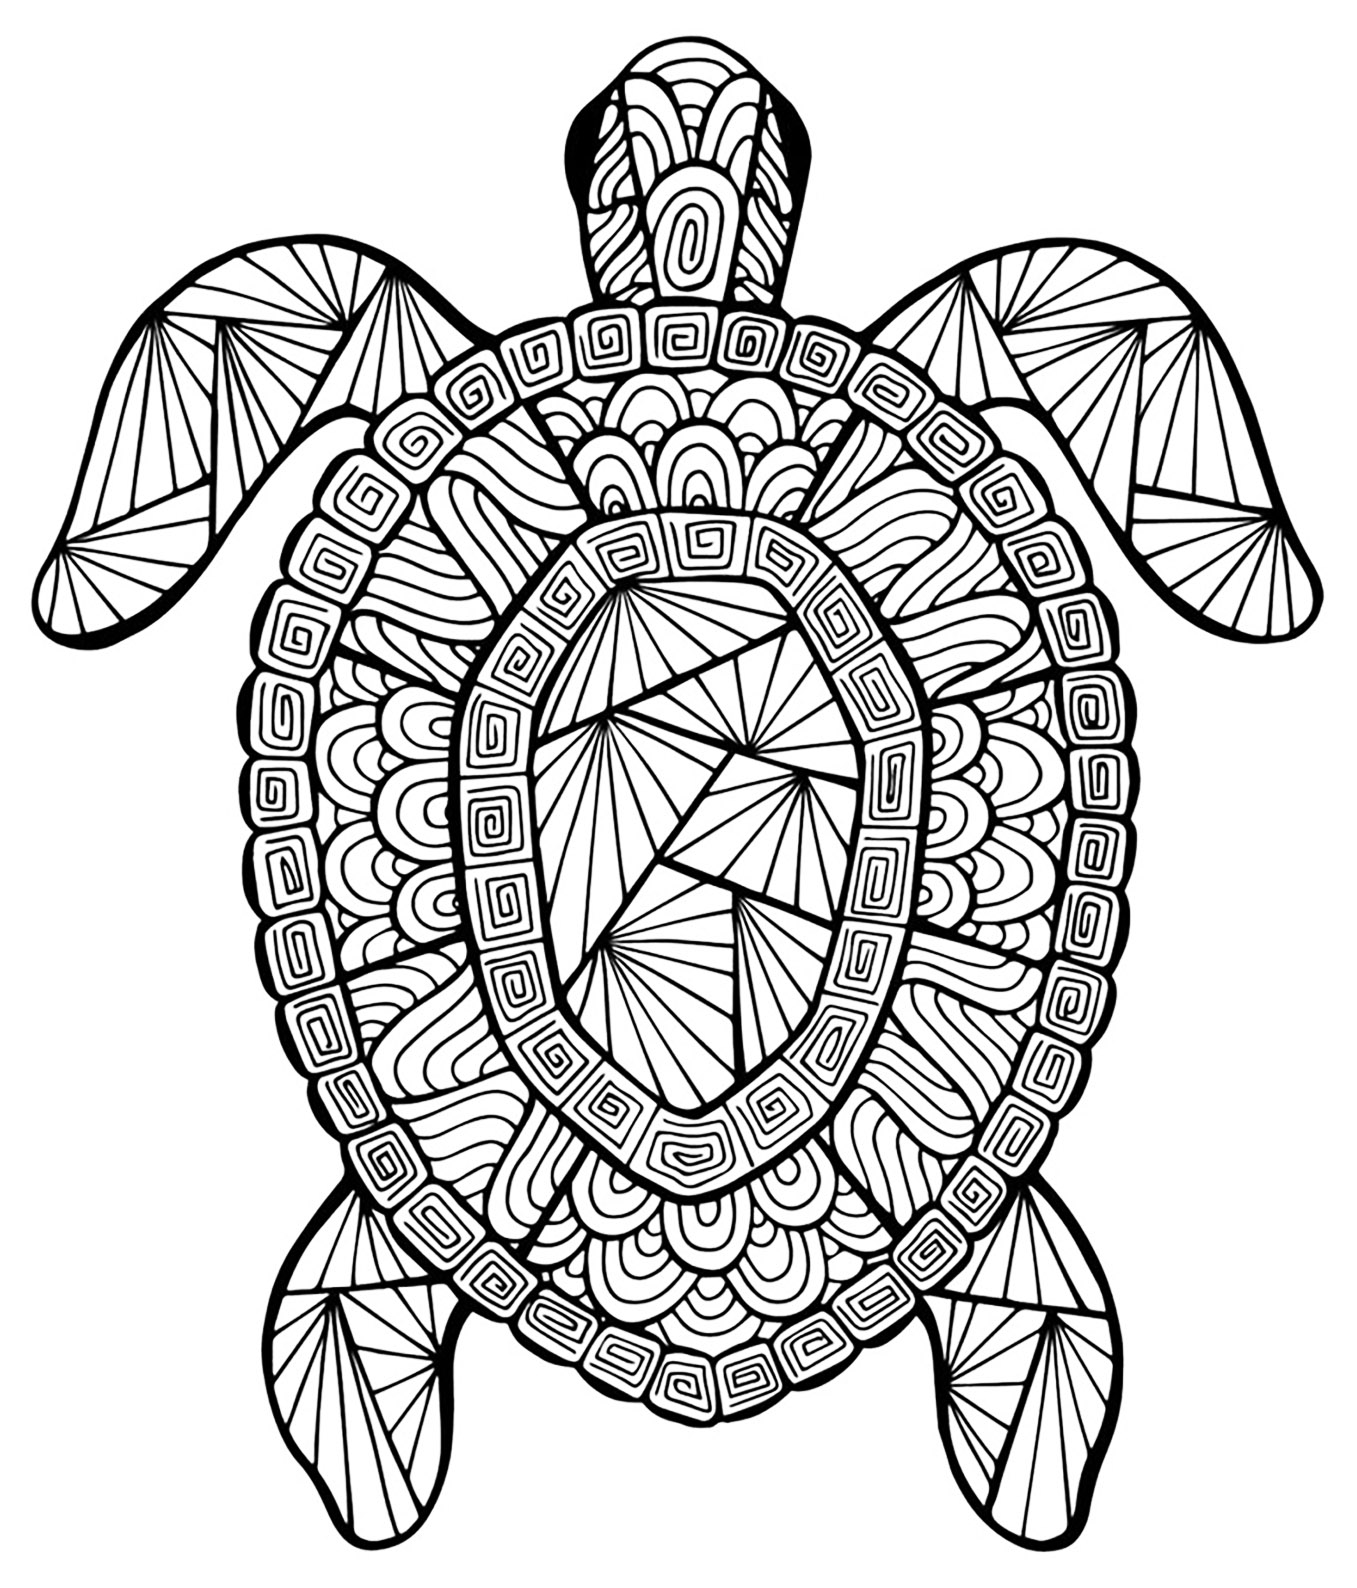 color this incredible turtle from the gallery animals